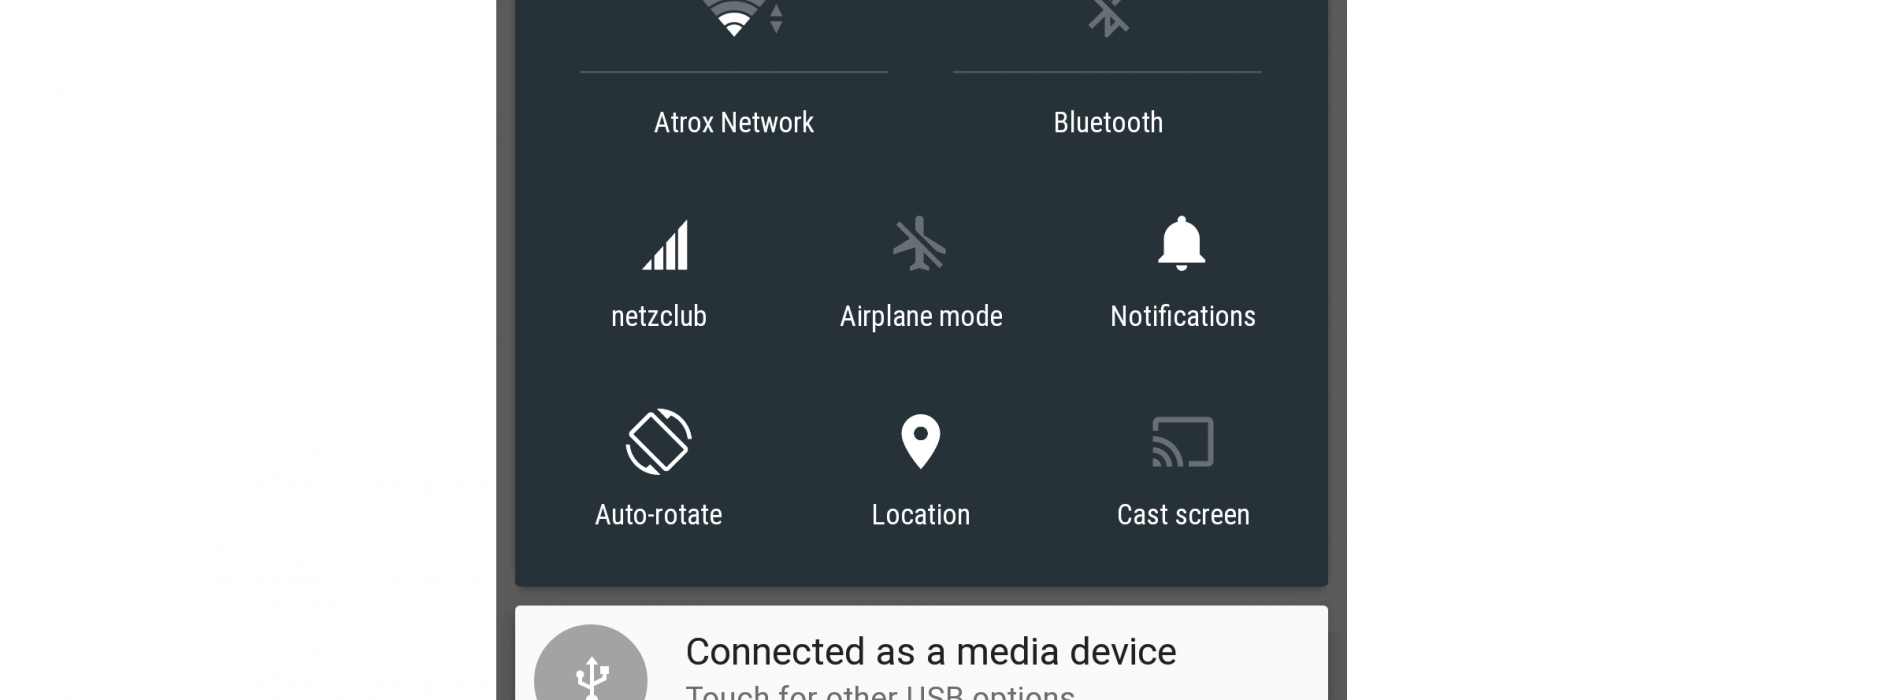 Android L's quick settings might be customizable once the OS gets released